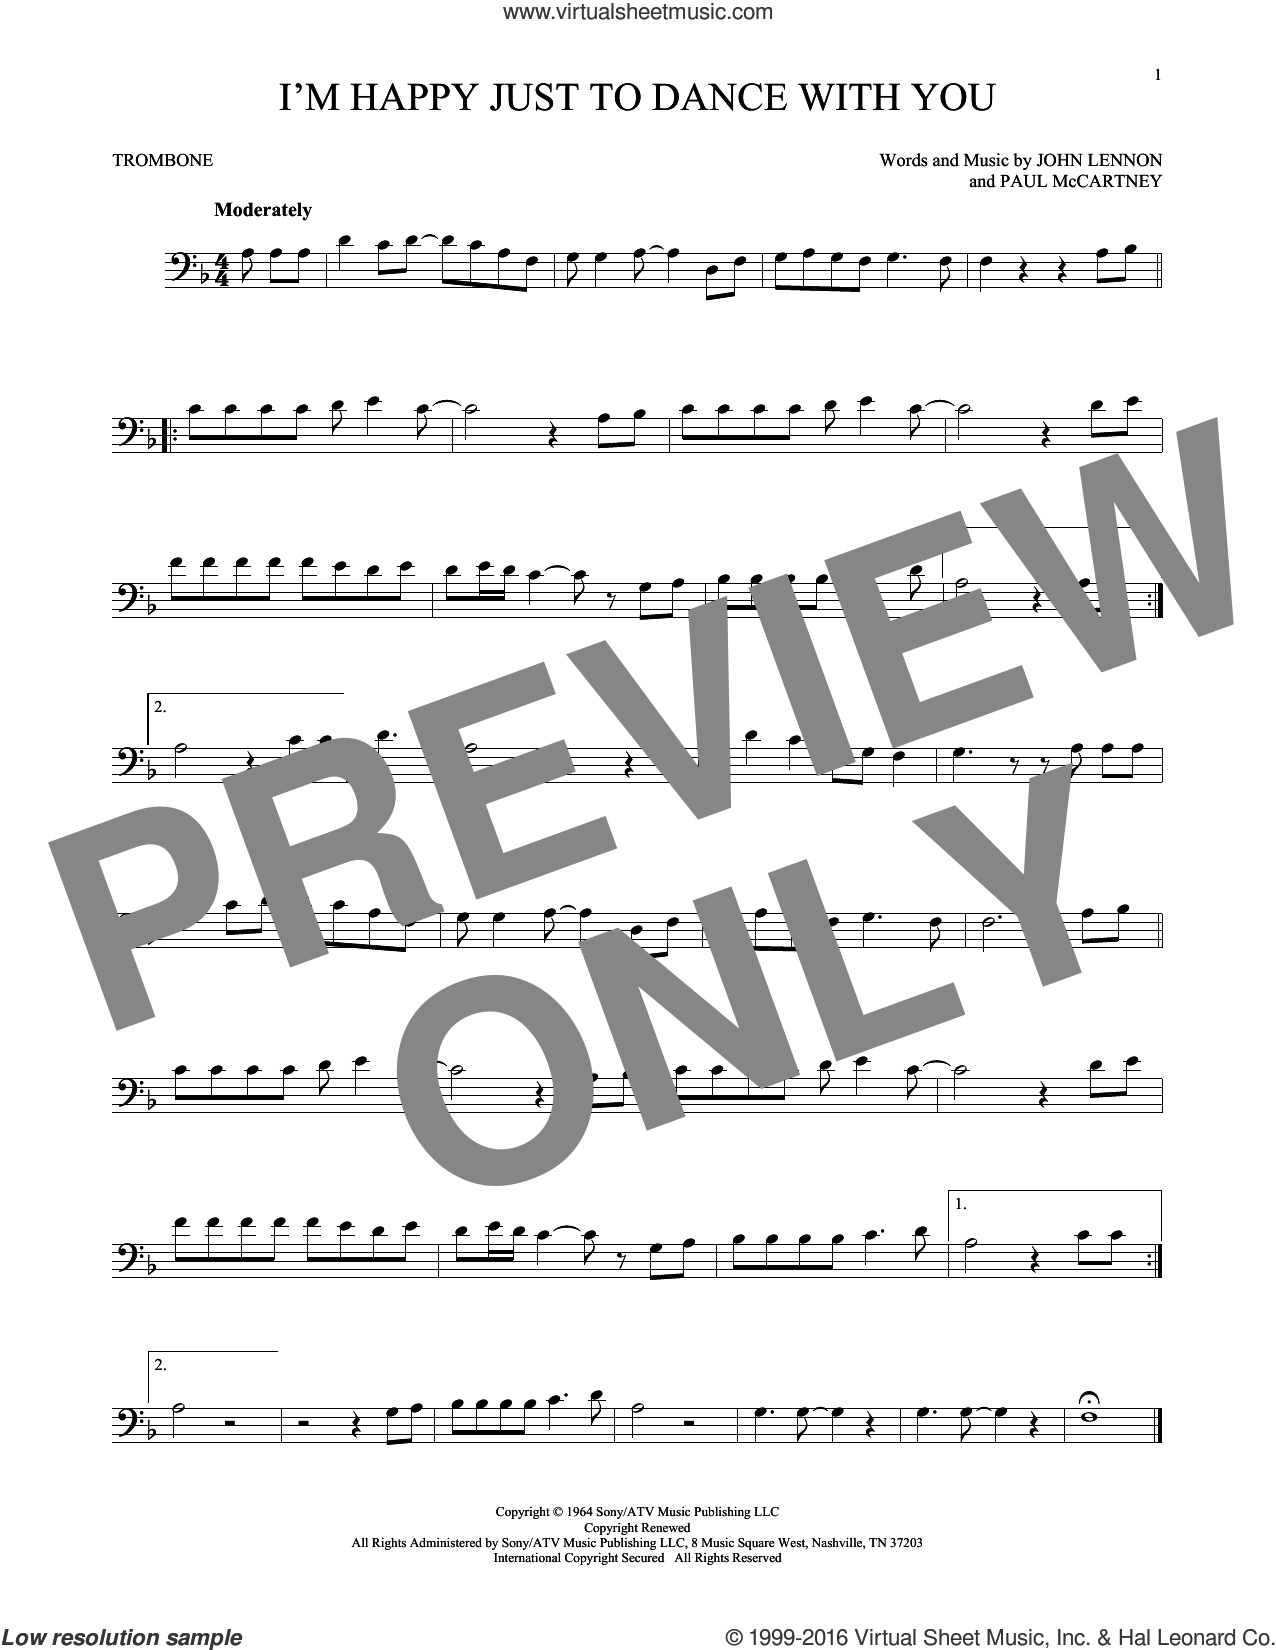 I'm Happy Just To Dance With You sheet music for trombone solo by Paul McCartney, The Beatles and John Lennon. Score Image Preview.